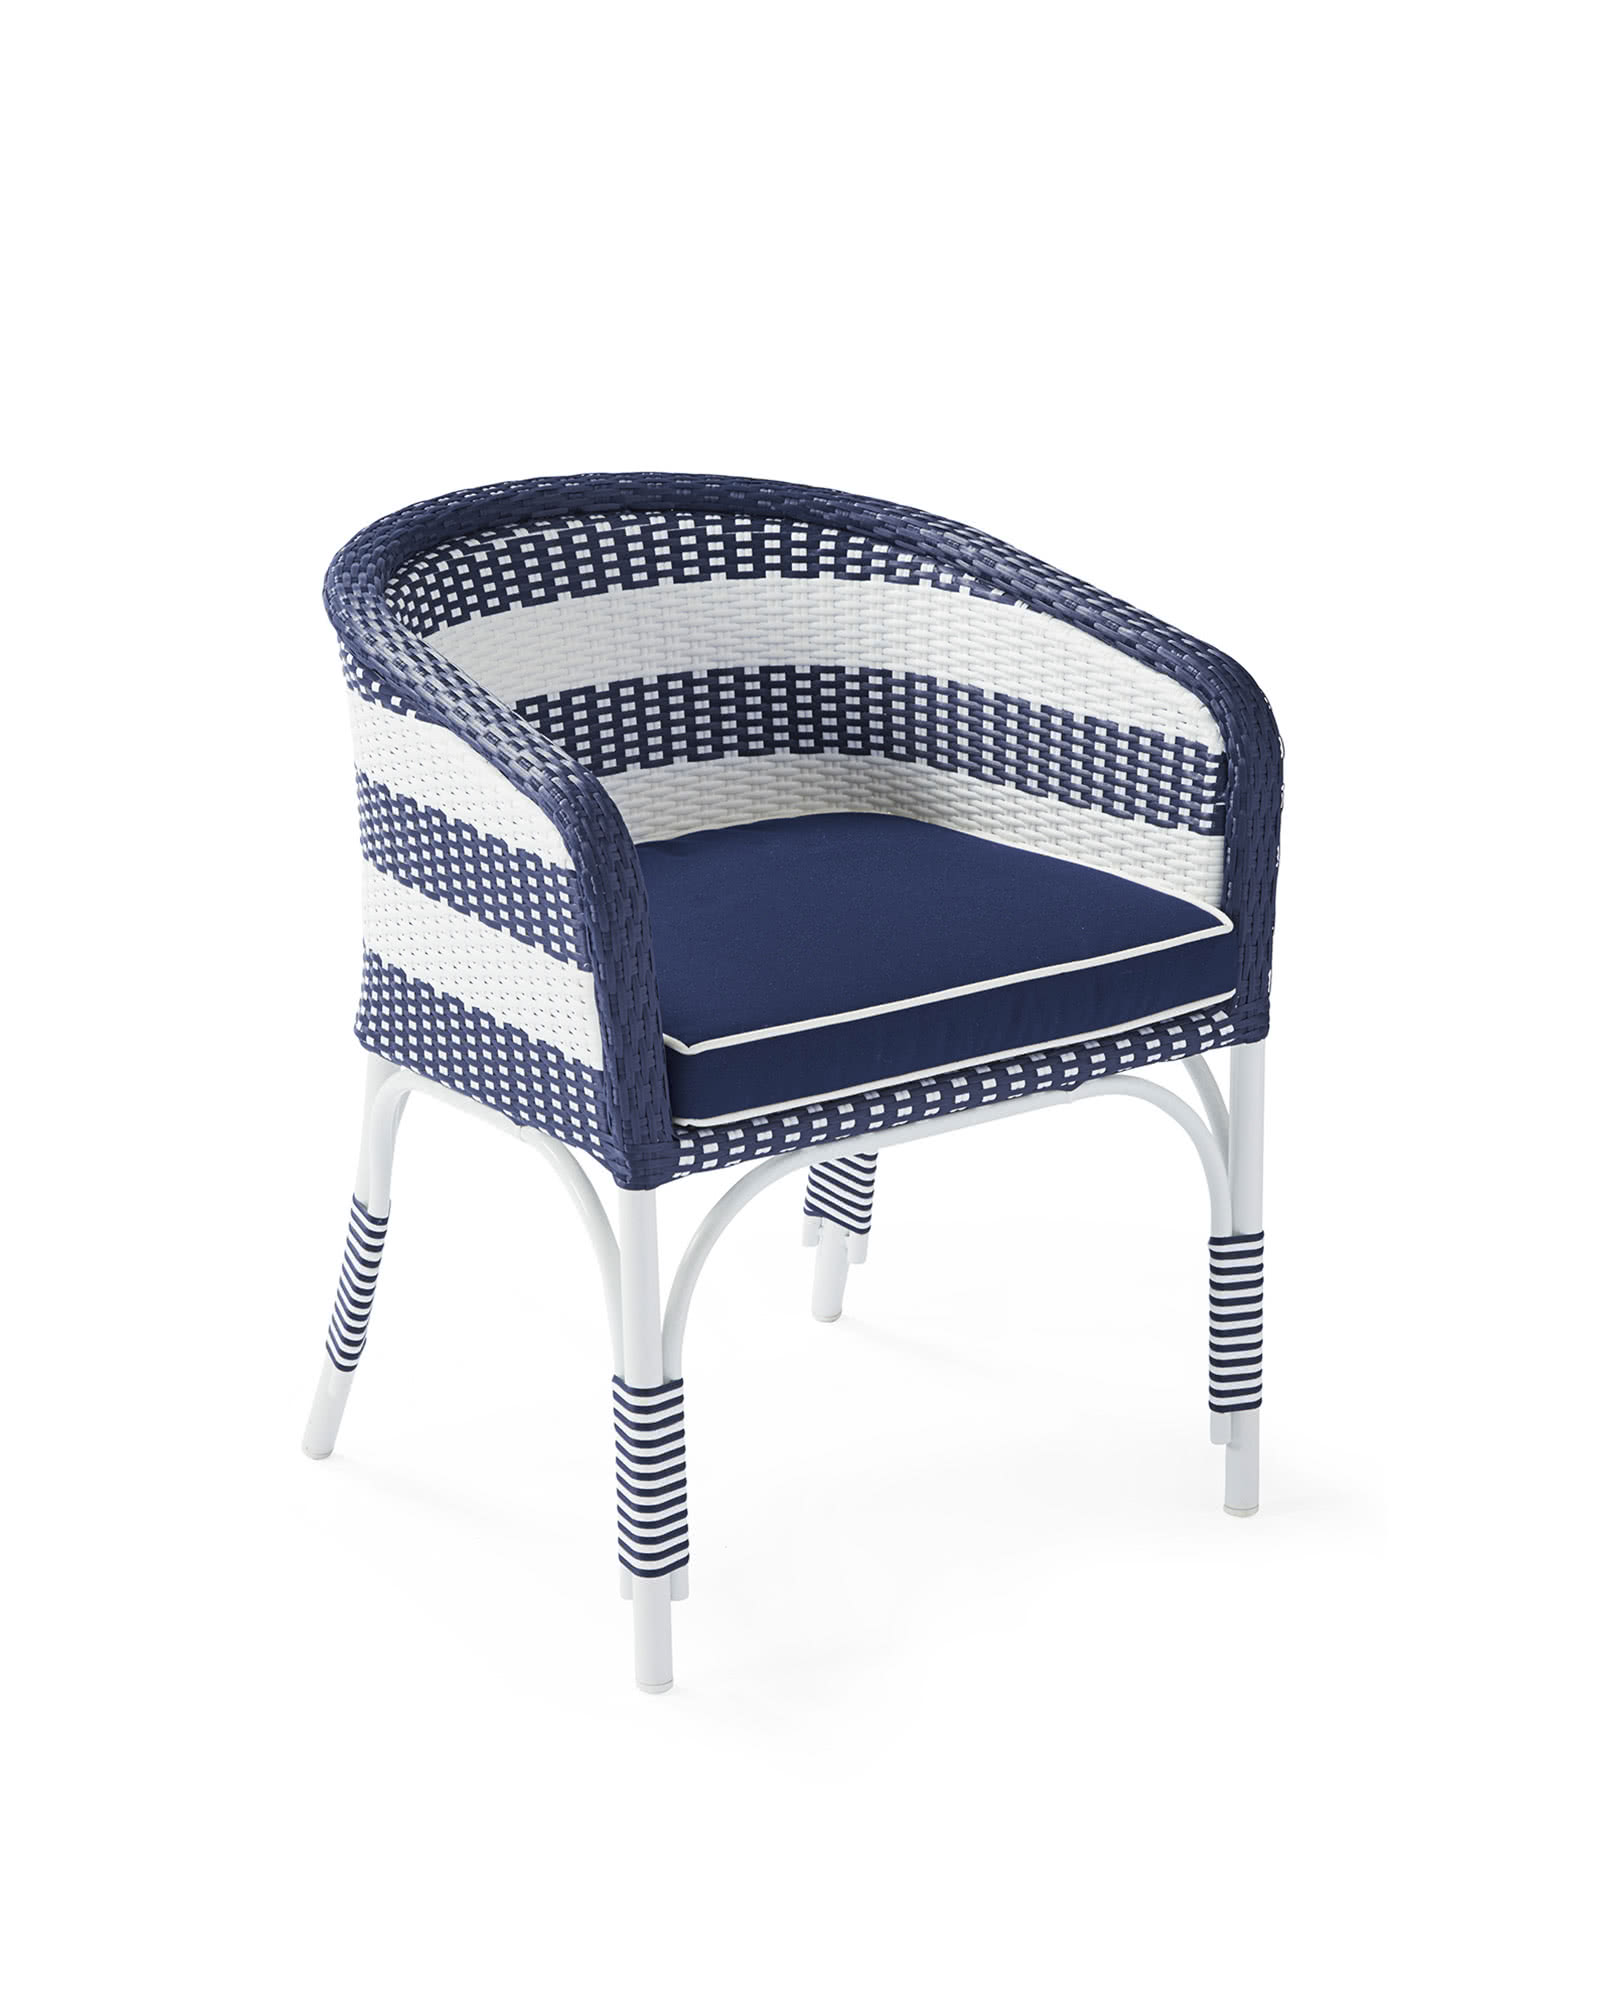 white bucket chair posture plus seat riviera outdoor serena and lily